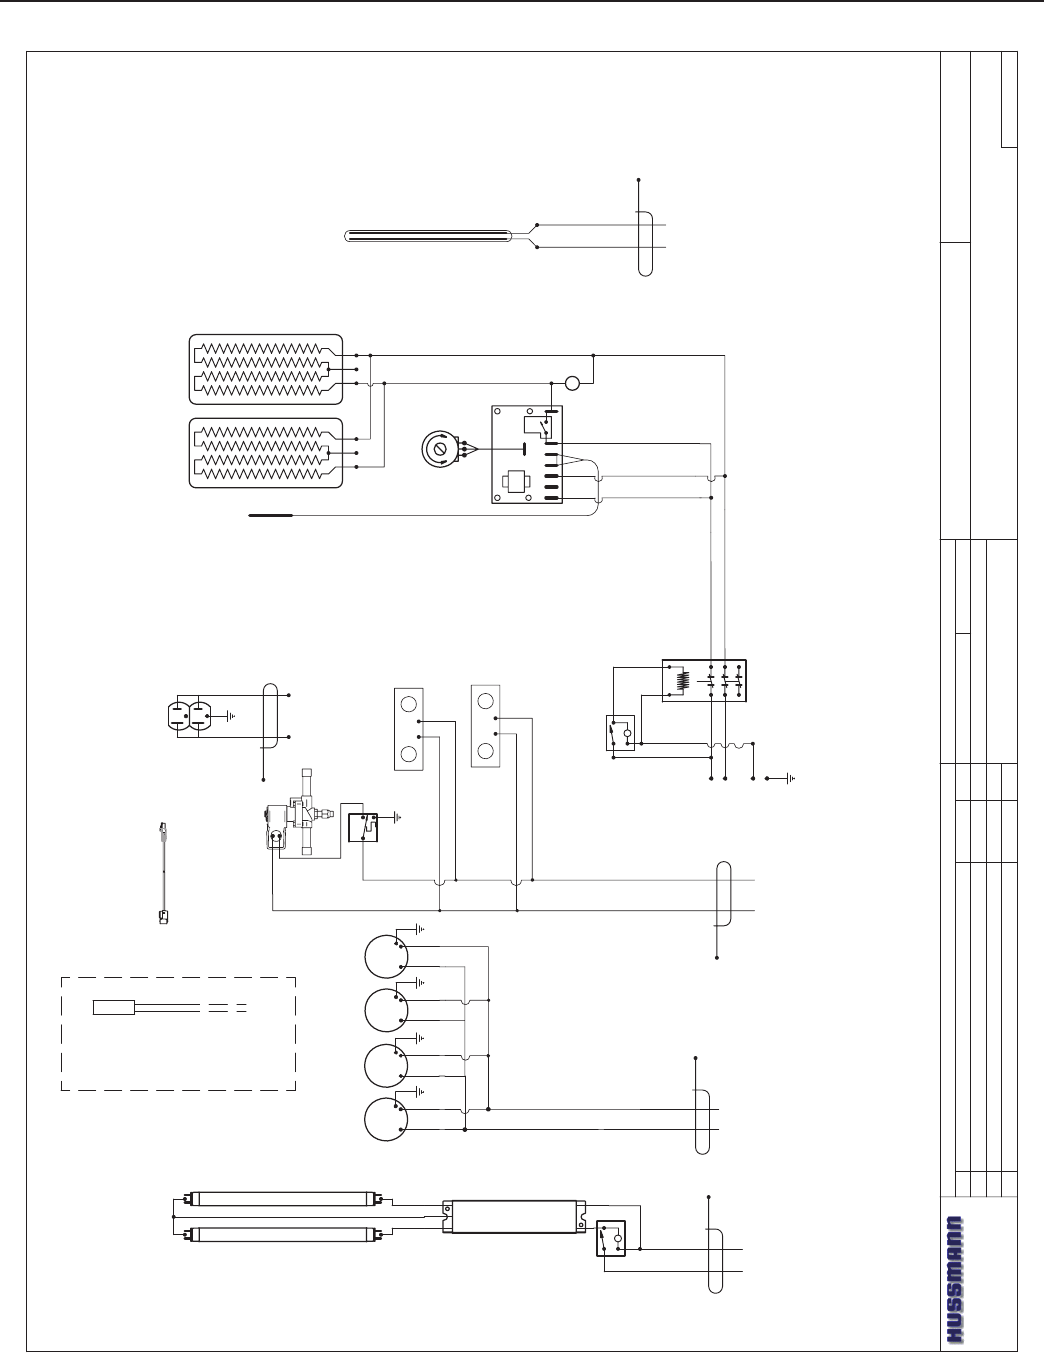 c715db81 ad39 4ed5 ae51 d8cd8e40e0eb bg15 page 21 of hussman refrigerator r3p user guide manualsonline com hussmann wiring diagrams at panicattacktreatment.co